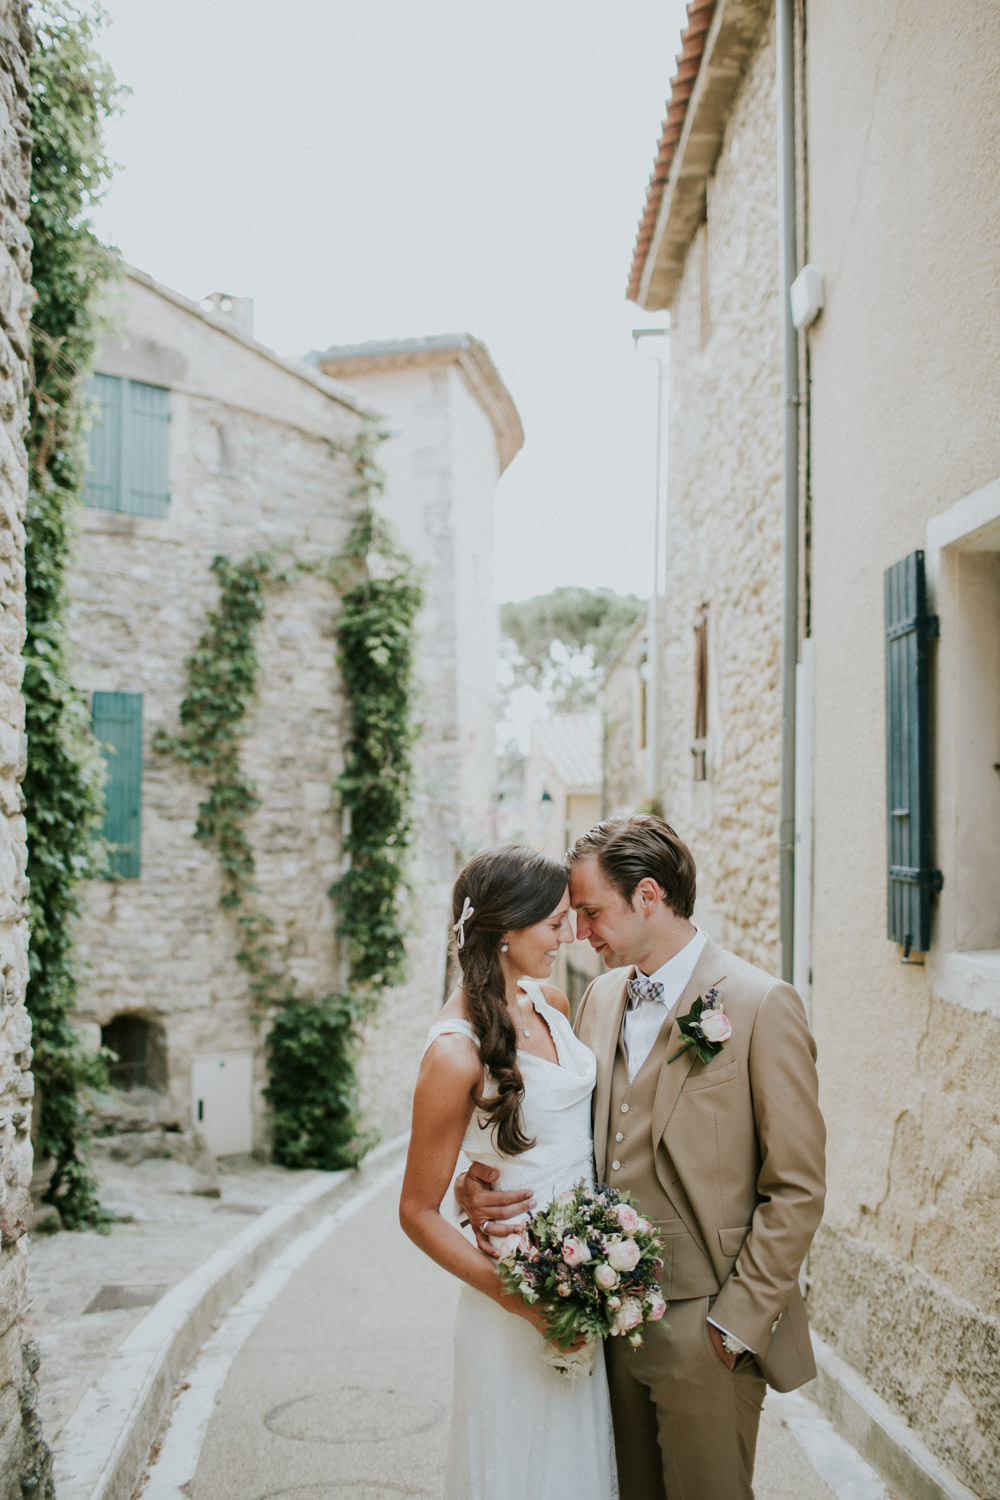 Wedding photographer Gordes